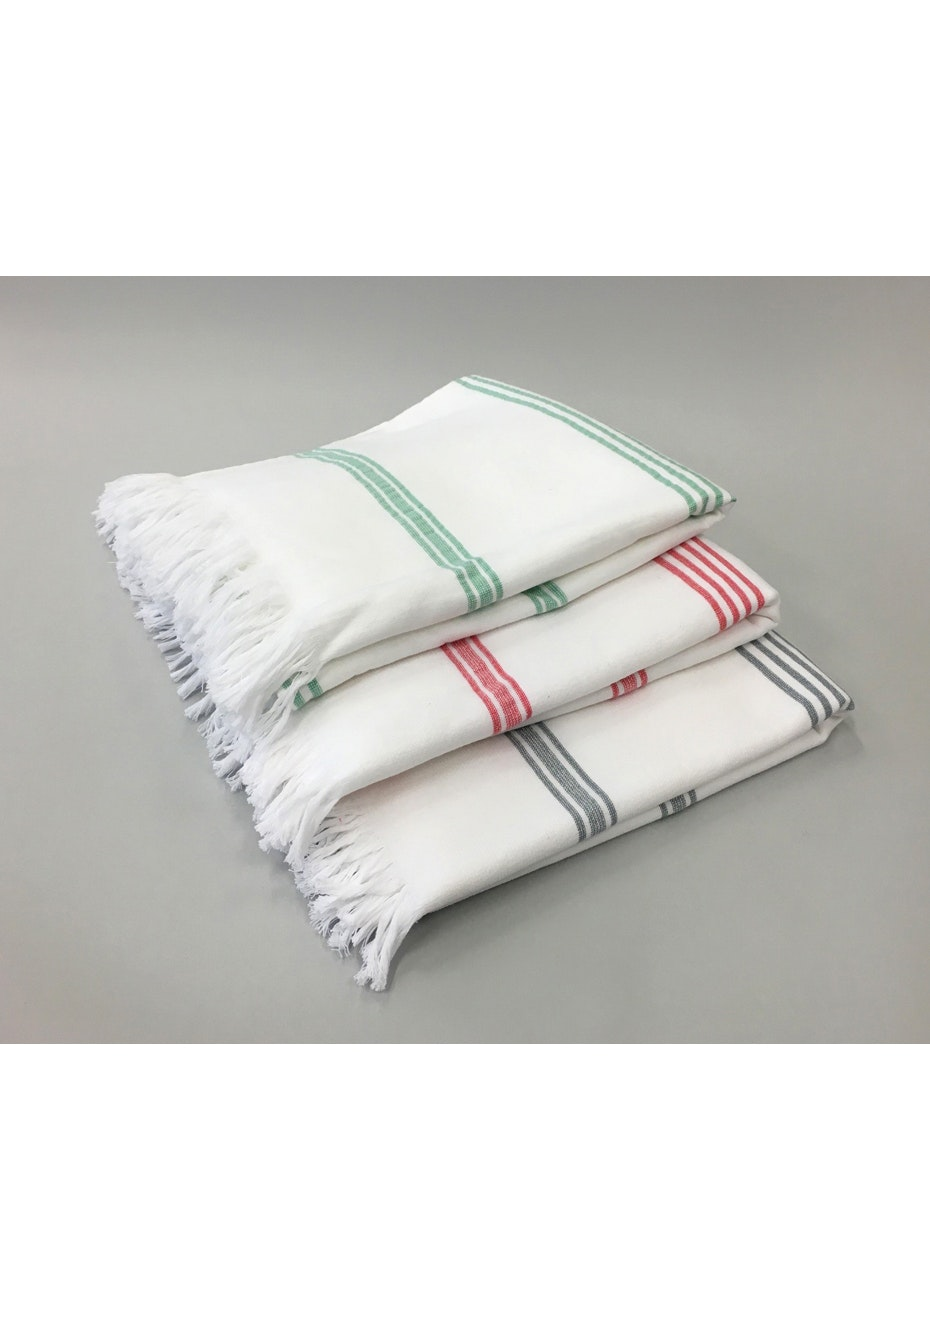 6 Pack Stripe Cotton Turkish Towel - 2 of each Striped Towel